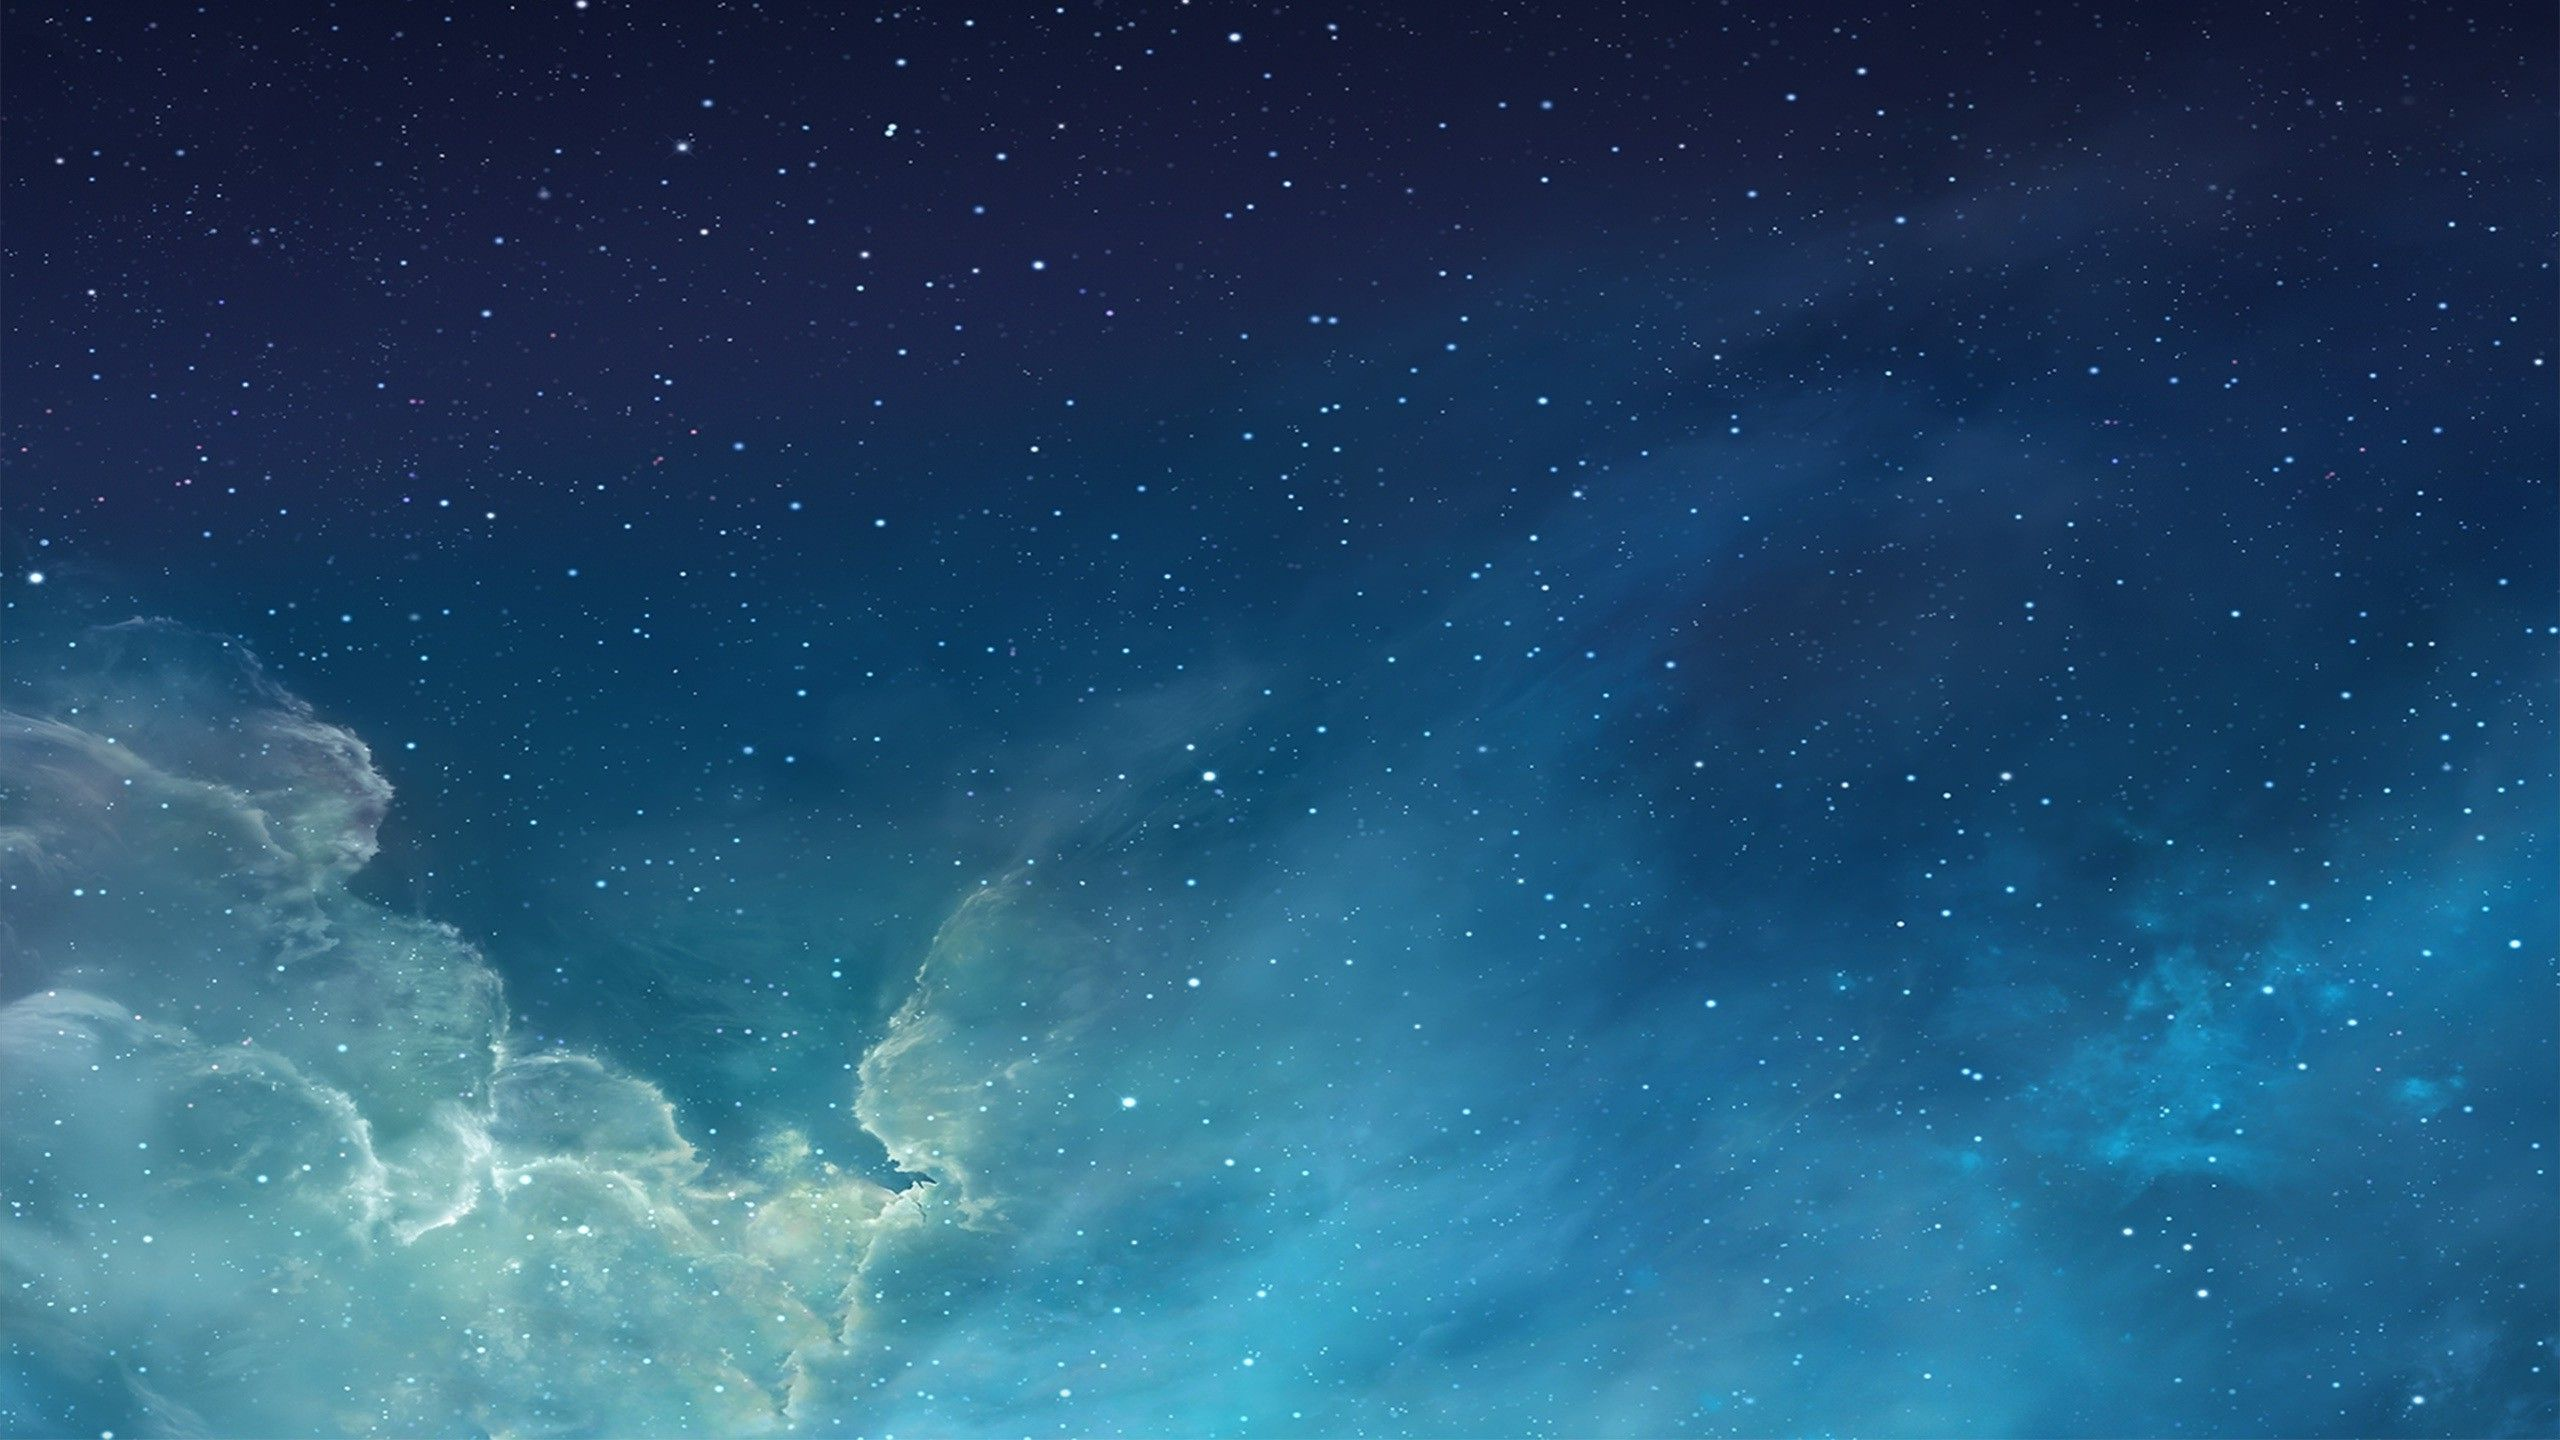 Sky And Stars Wallpaper